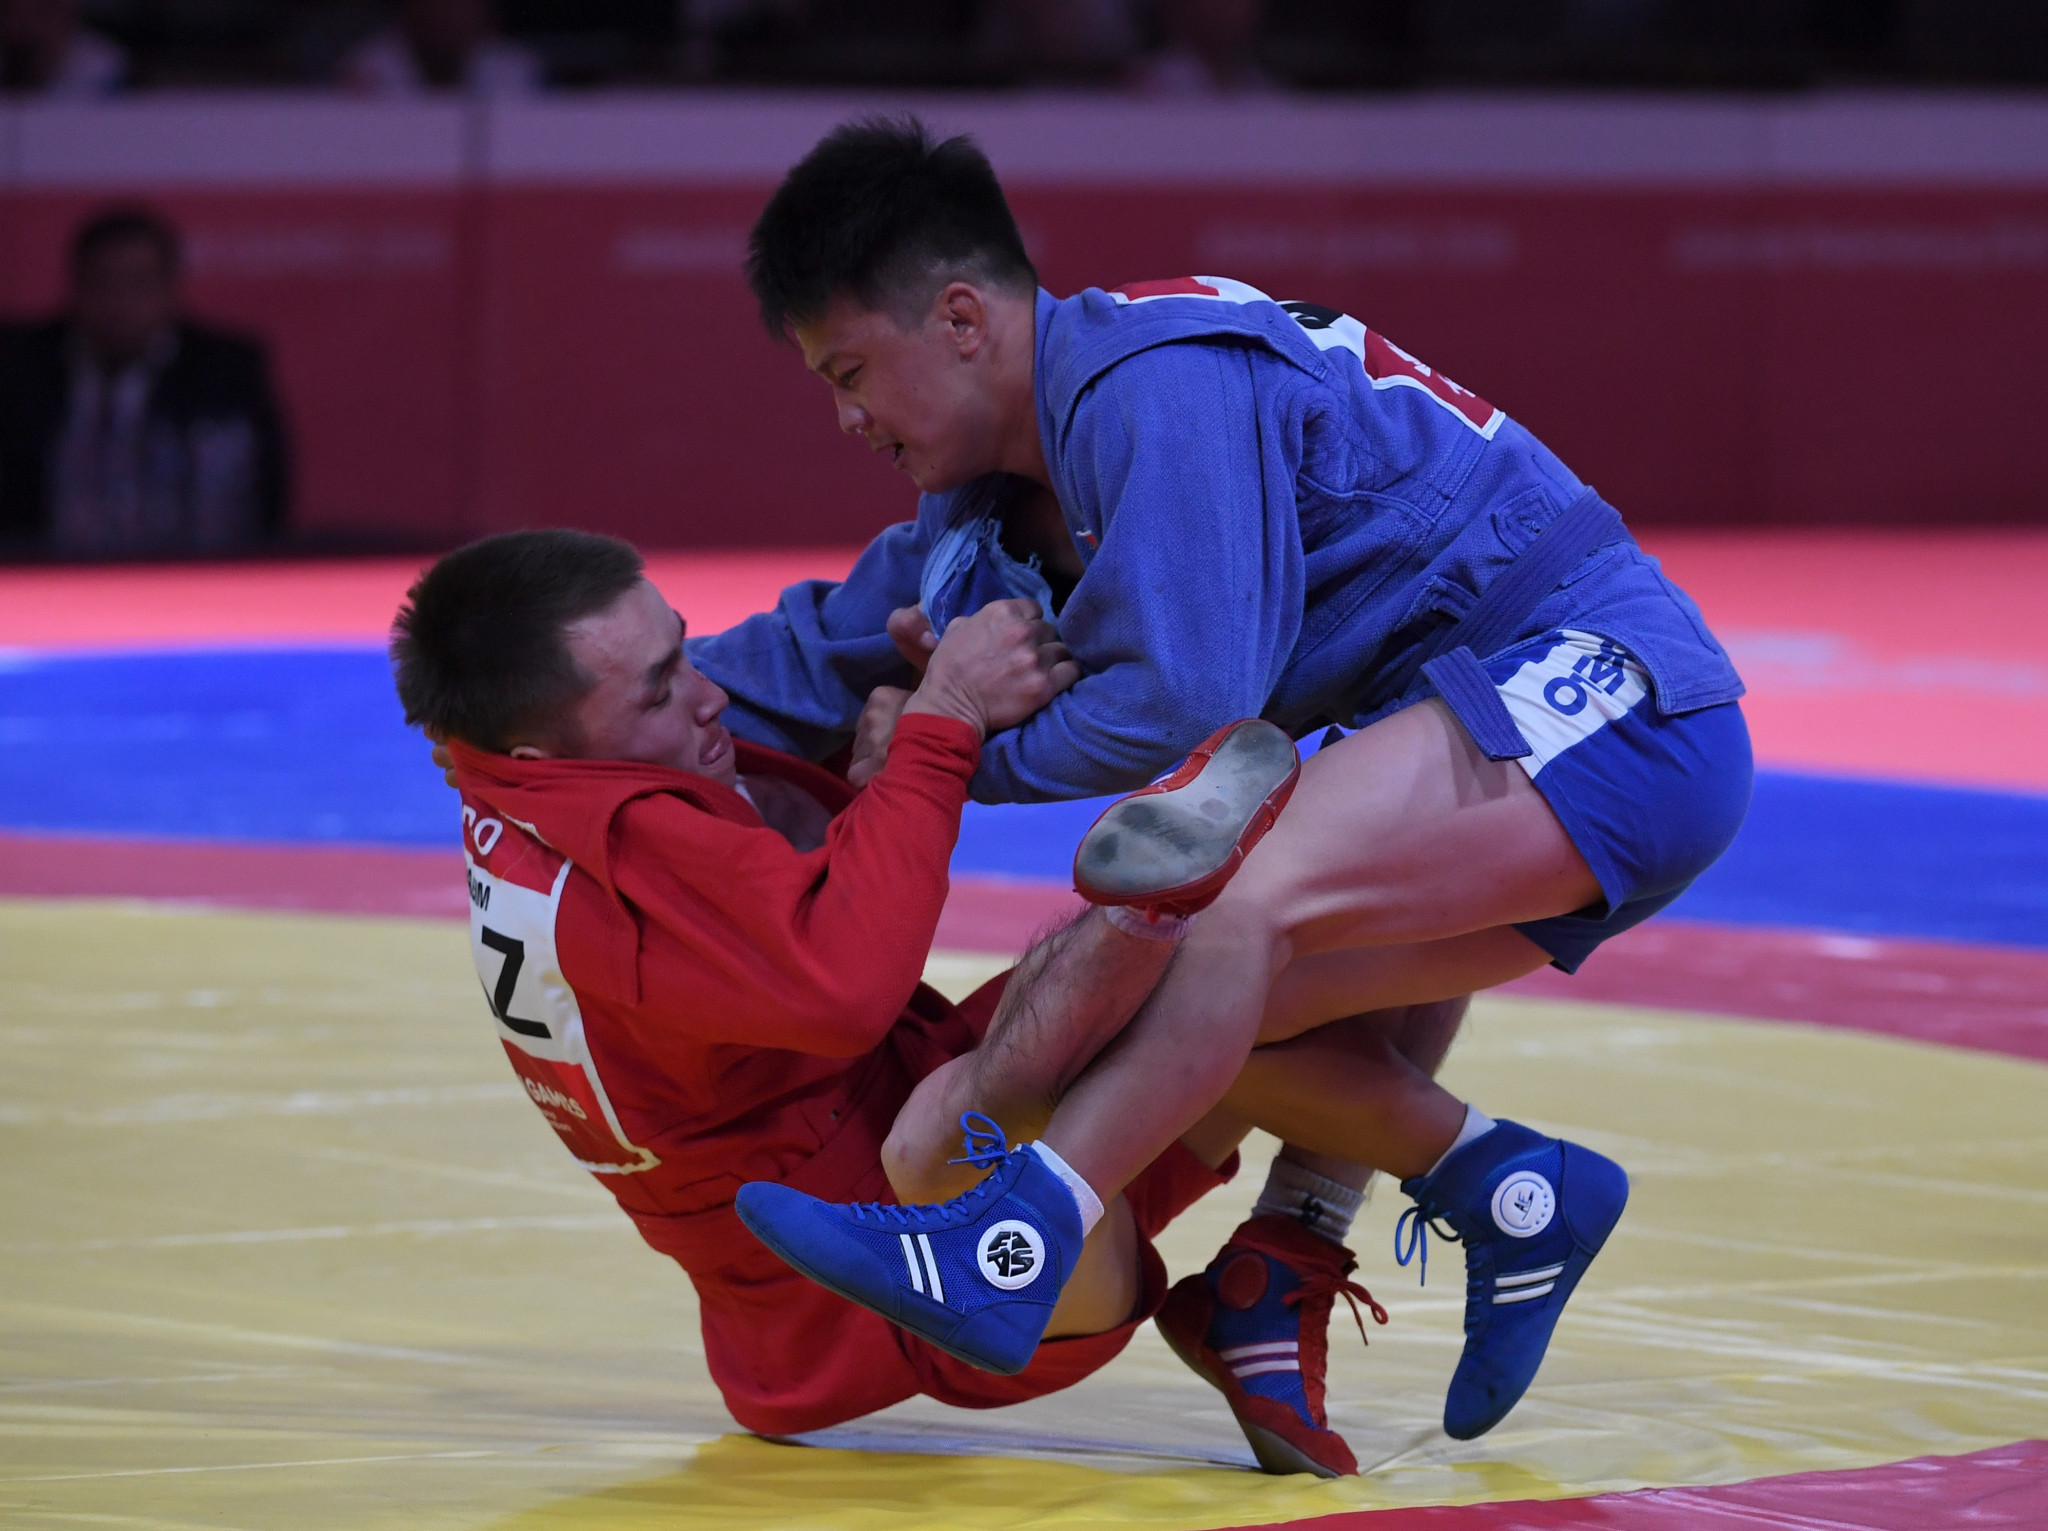 Kazakhstan's Baglan Ibragim fights Mongolia's Erdenebaatar Shaaluu during the final of the men's - 52kg Sambo event at the 2018 Asian Games in Jakarta on August 31, 2018. © PUNIT PARANJPE/AFP via Getty Images